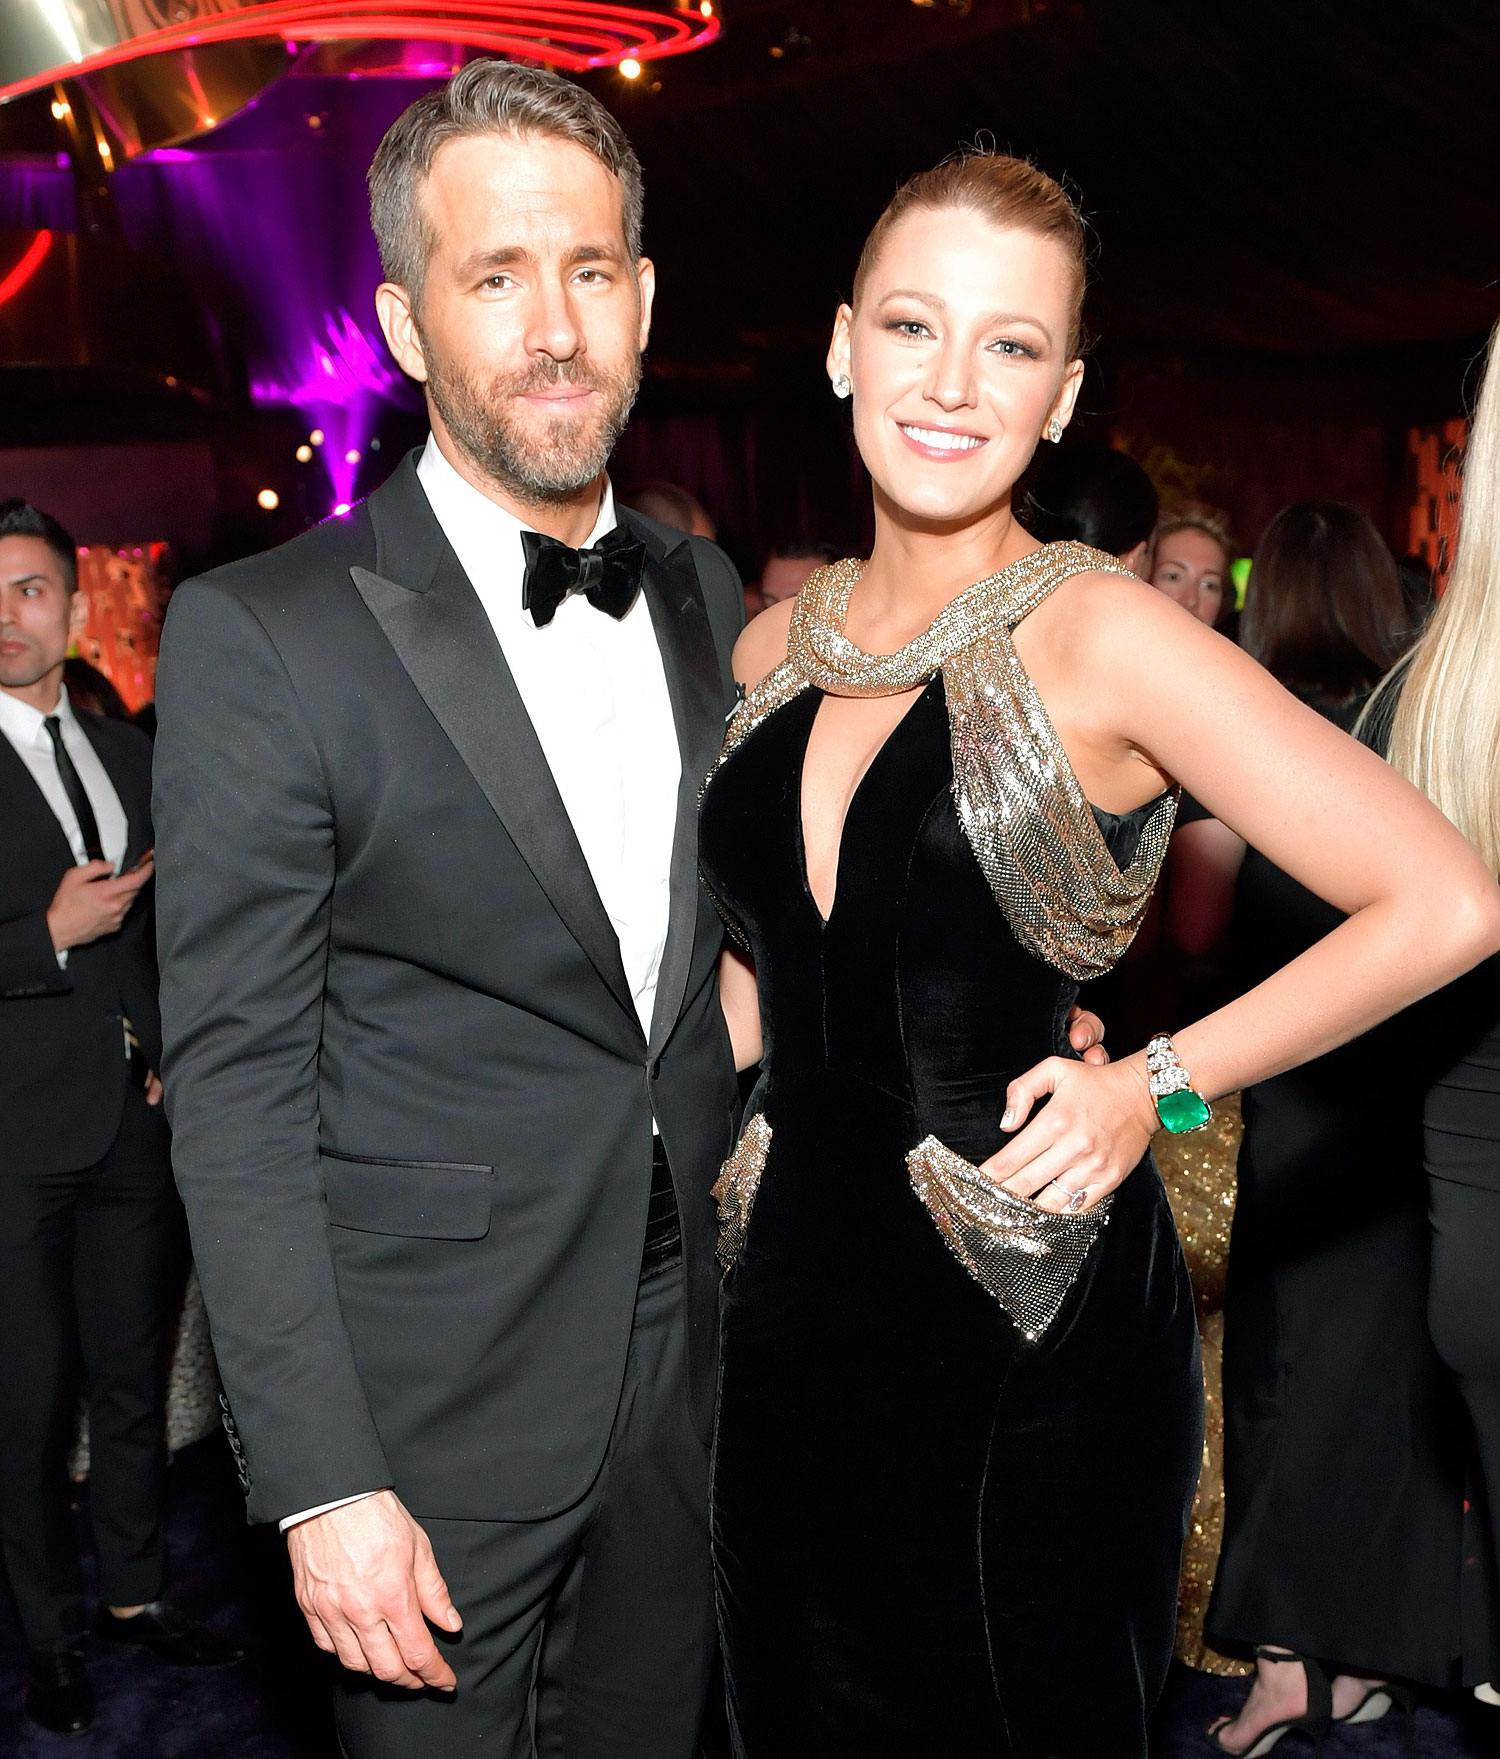 BEVERLY HILLS, CA - JANUARY 08:  Actors Ryan Reynolds (L) and Blake Lively attend The 2017 InStyle and Warner Bros. 73rd Annual Golden Globe Awards Post-Party at The Beverly Hilton Hotel on January 8, 2017 in Beverly Hills, California.  (Photo by Stefanie Keenan/Getty Images for InStyle)